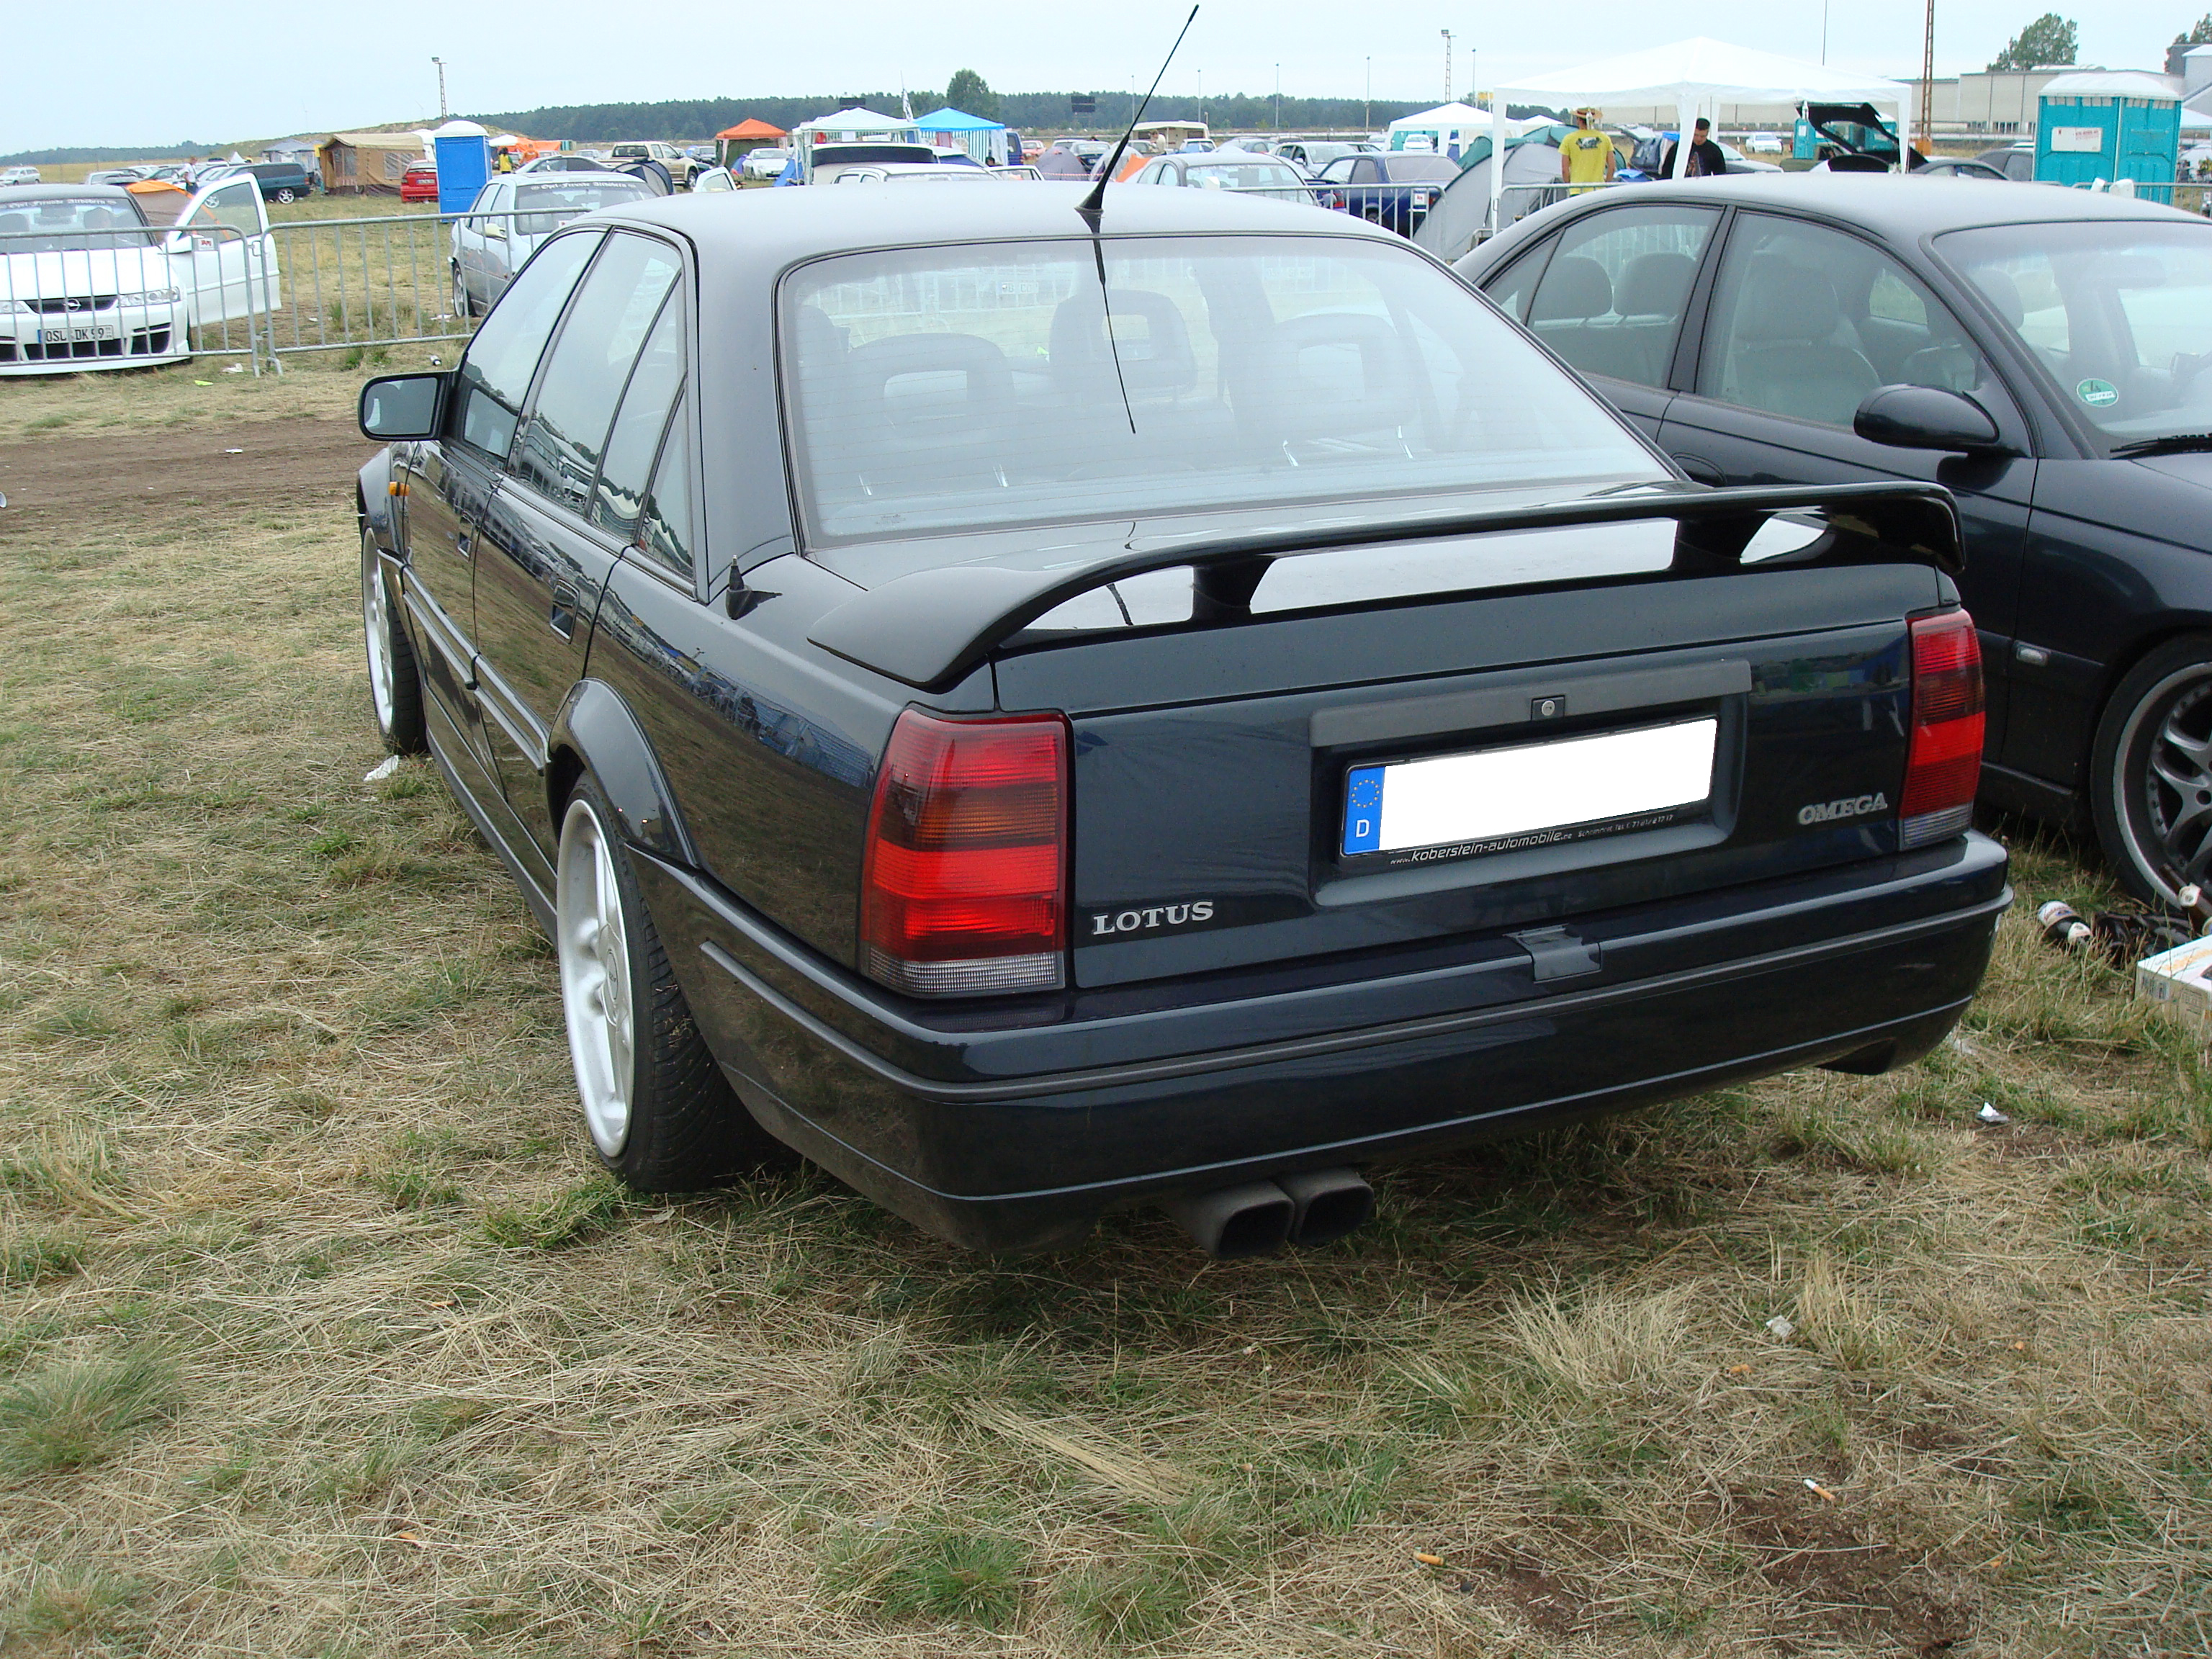 opel-lotus-omega_key_0 Surprising Lotus Carlton Engine for Sale Cars Trend